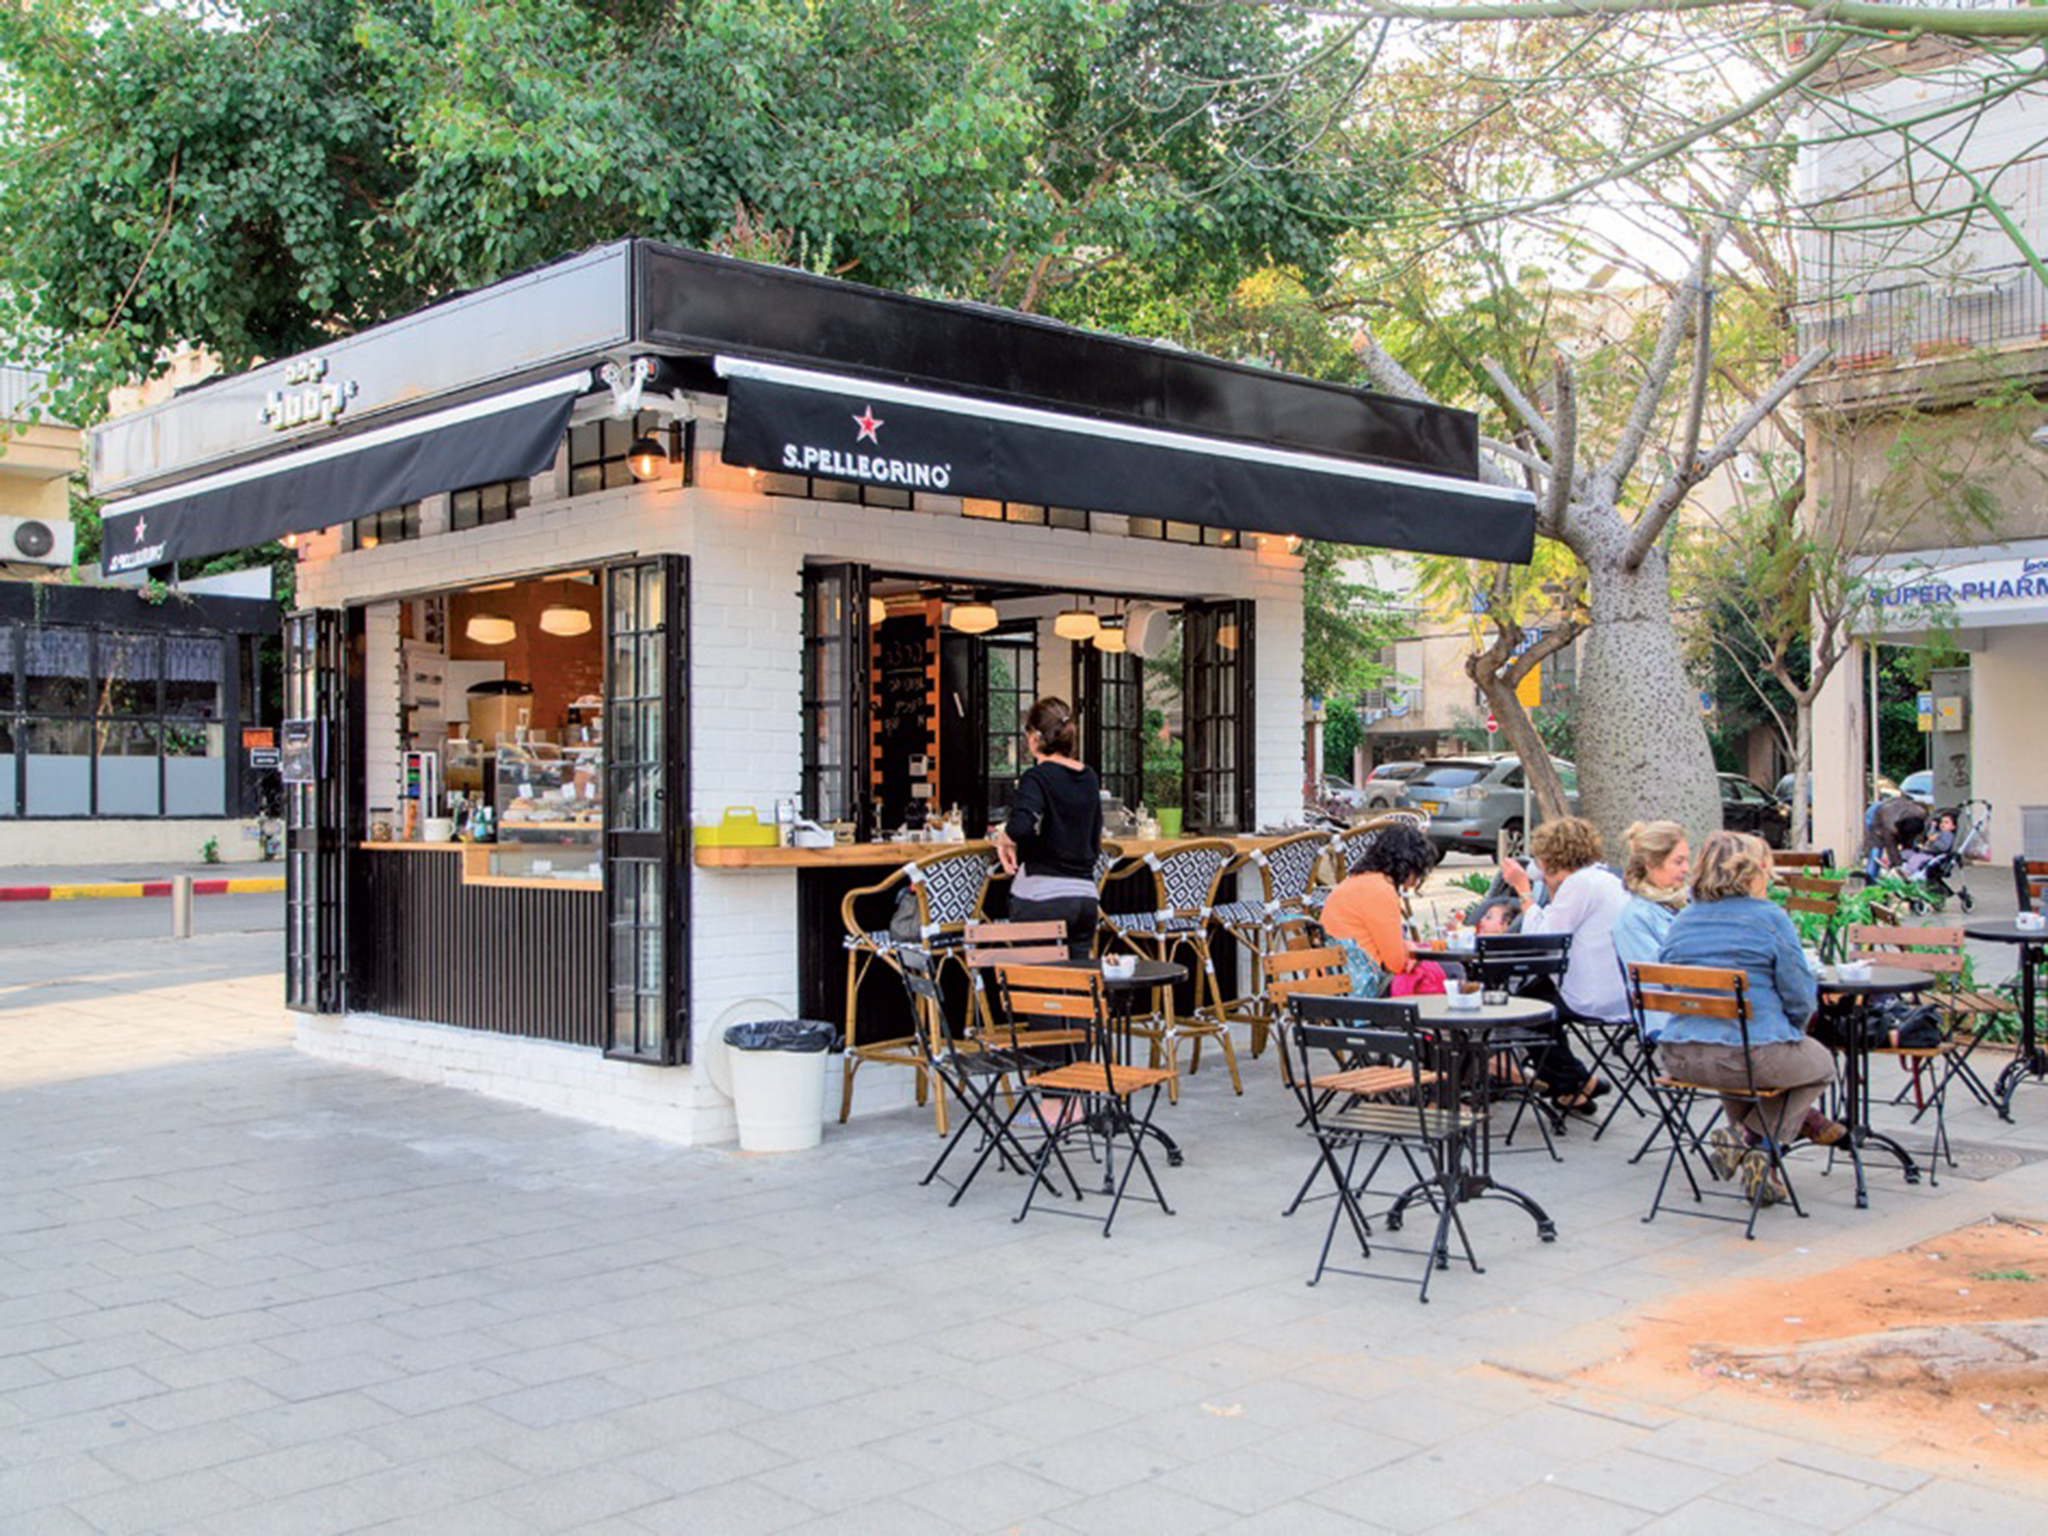 The 5 most buzzing coffee kiosks in Tel Aviv